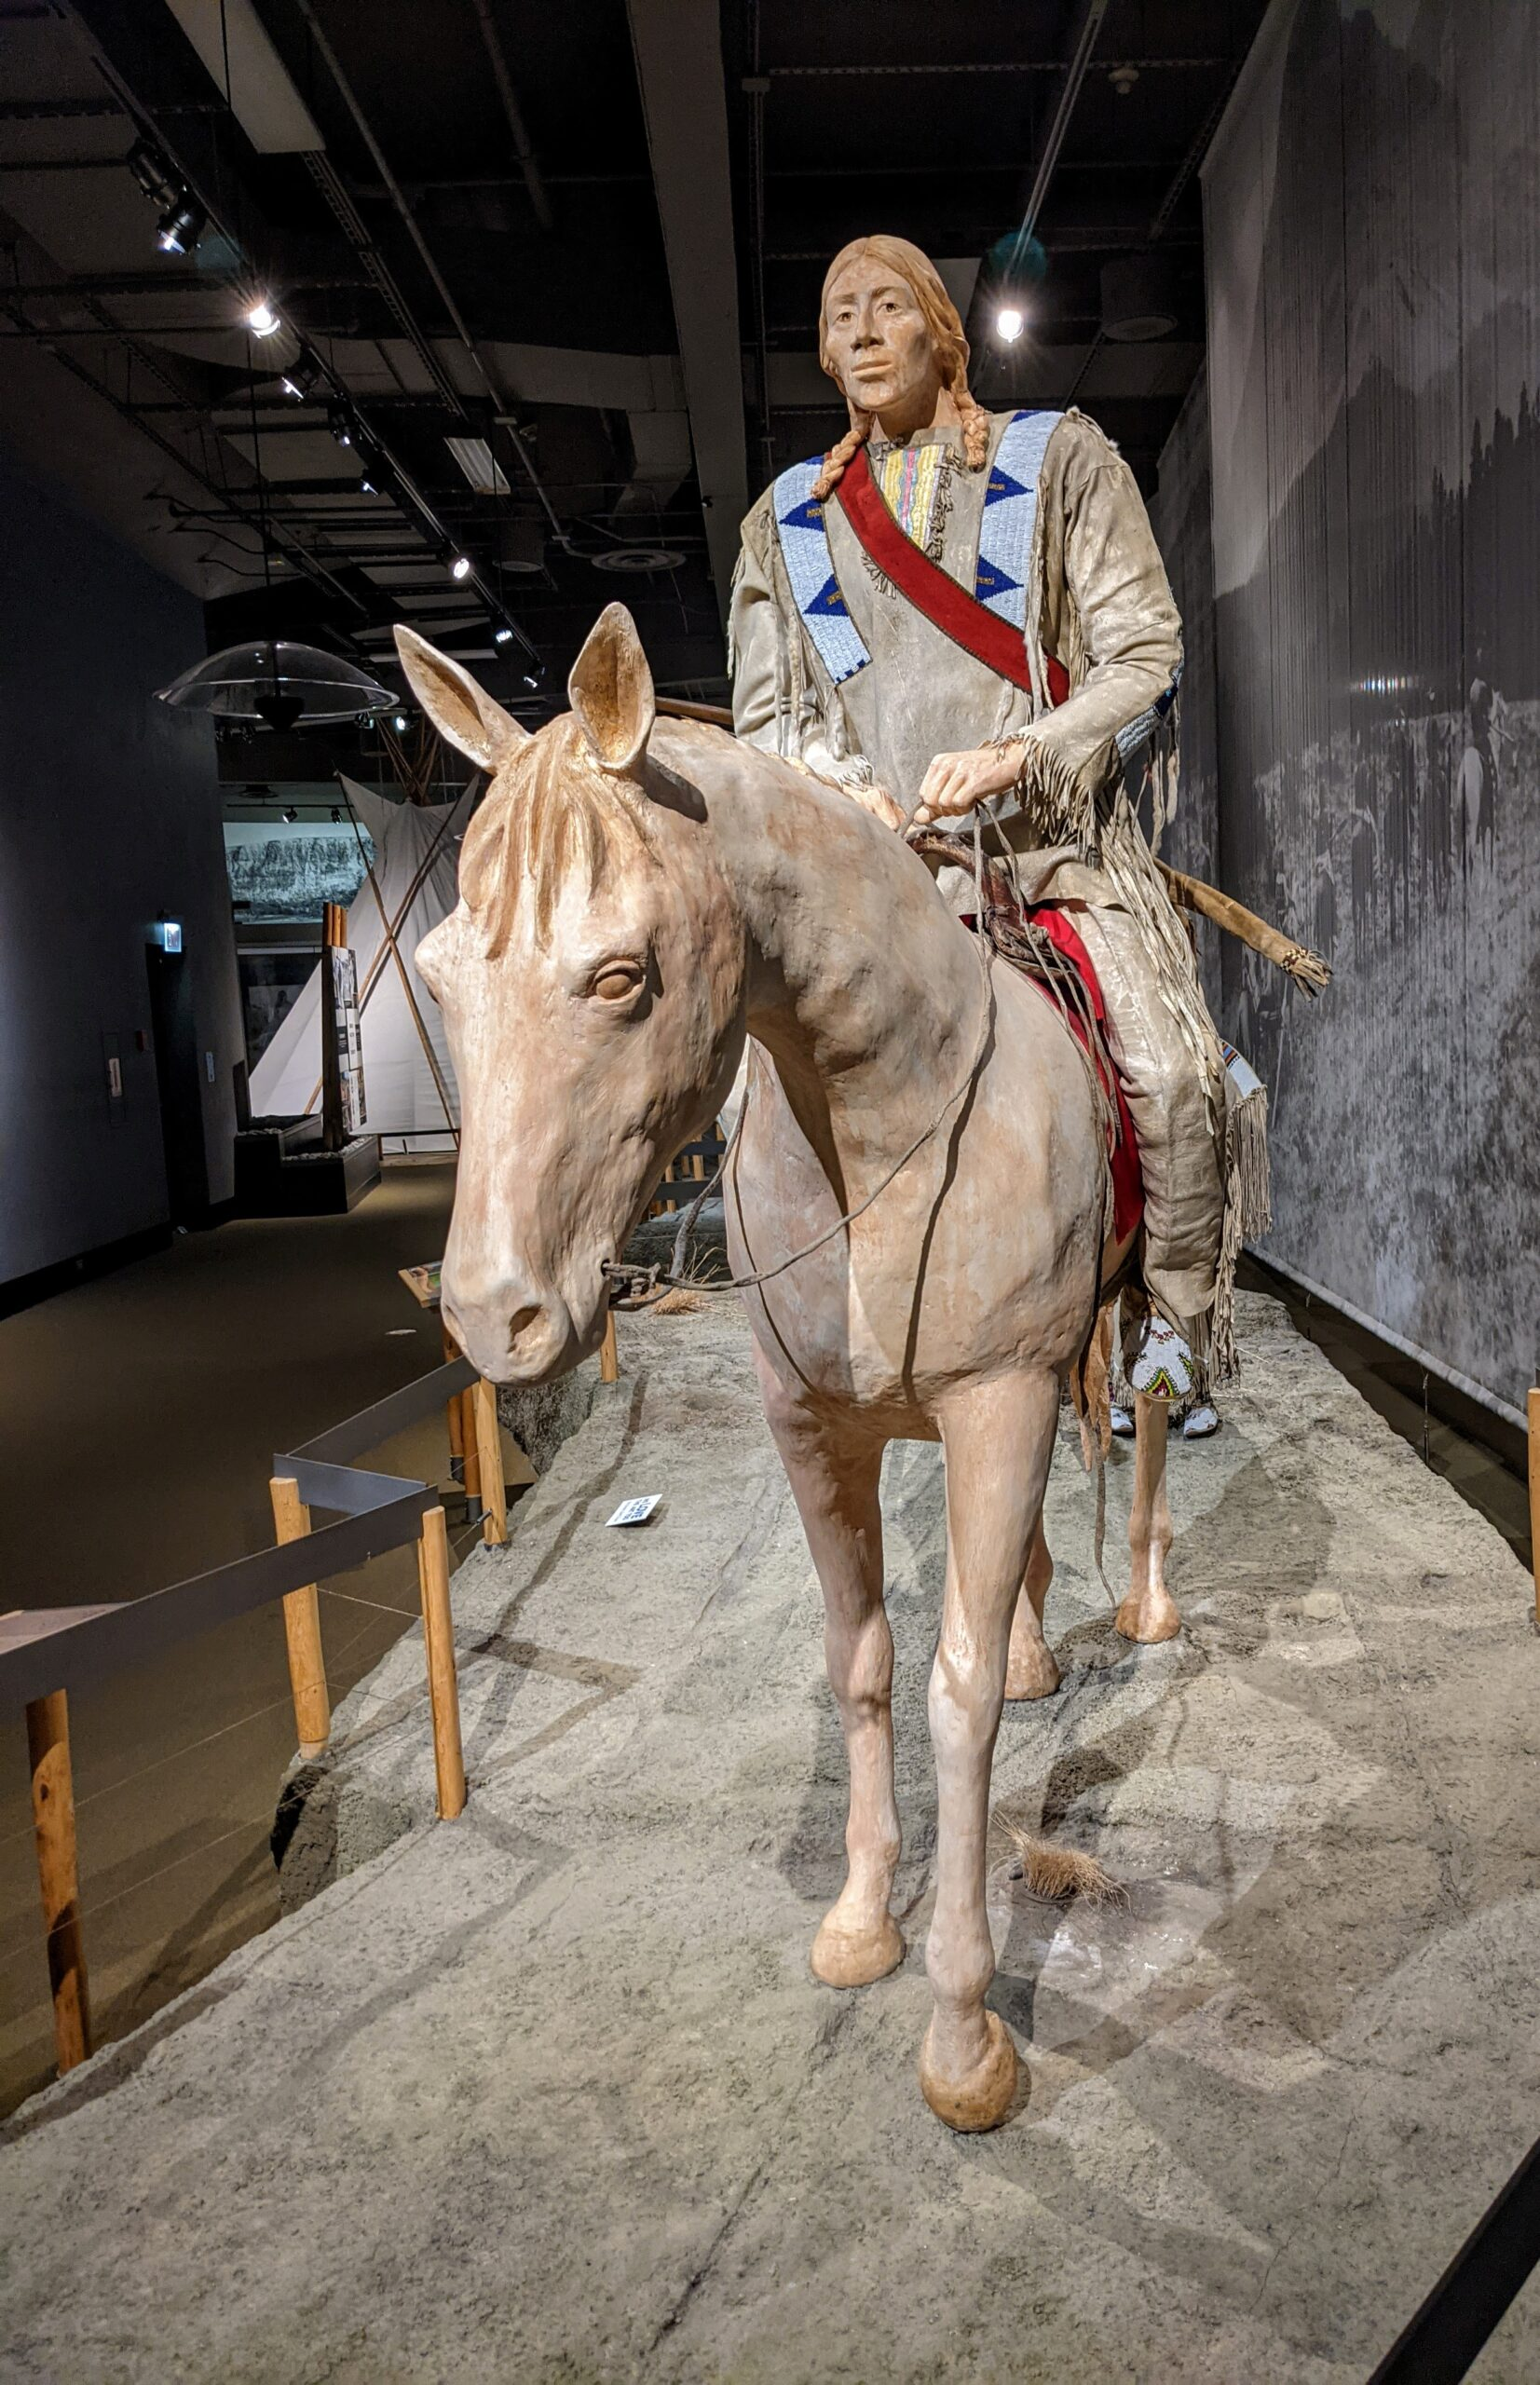 A model of a Plaines Indian in Cody Wyoming